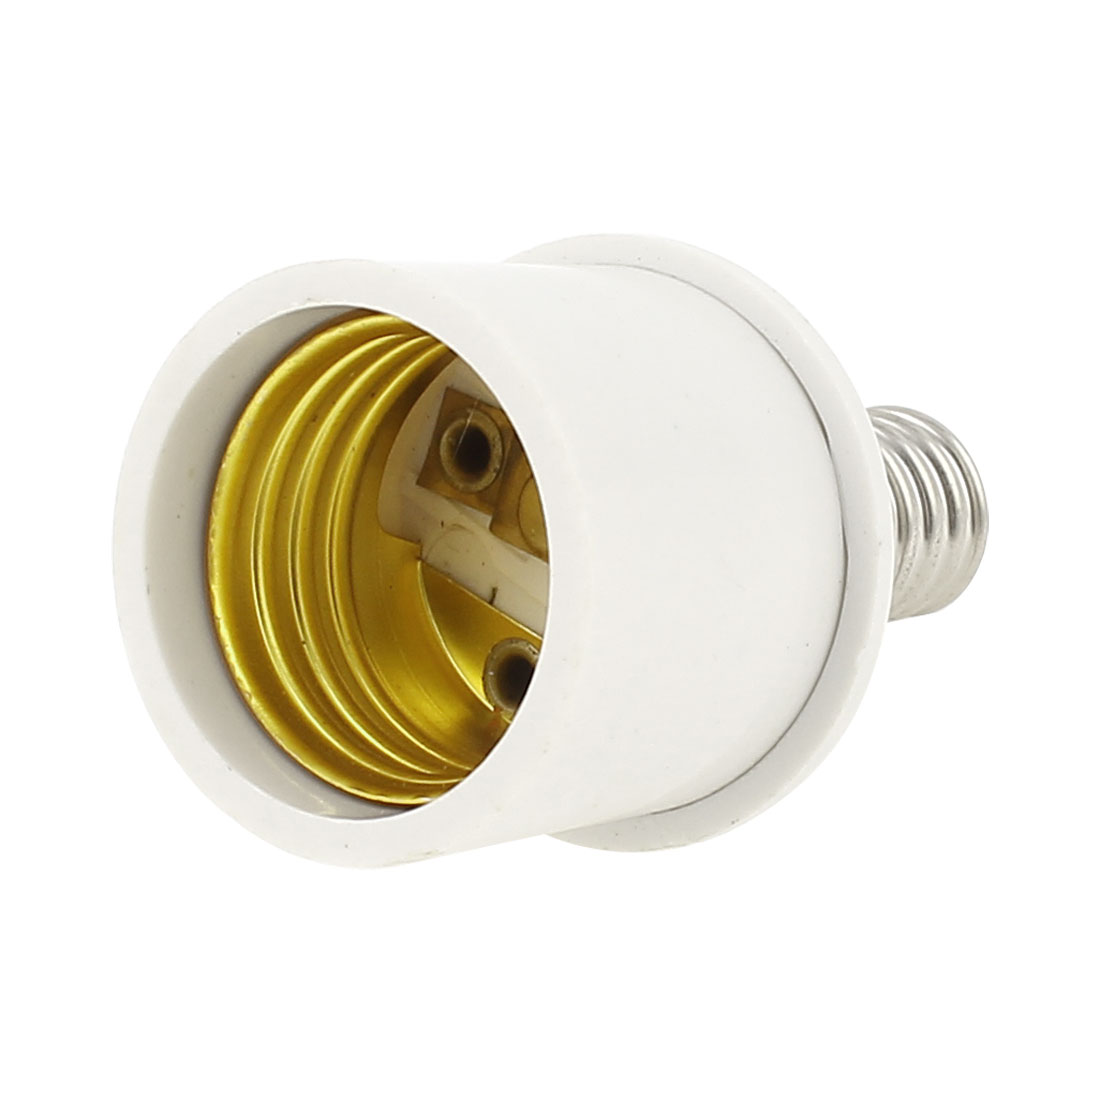 E14 to E27 Bulb Holders Light Screw Lamp Socket Adapters AC 110V-220V